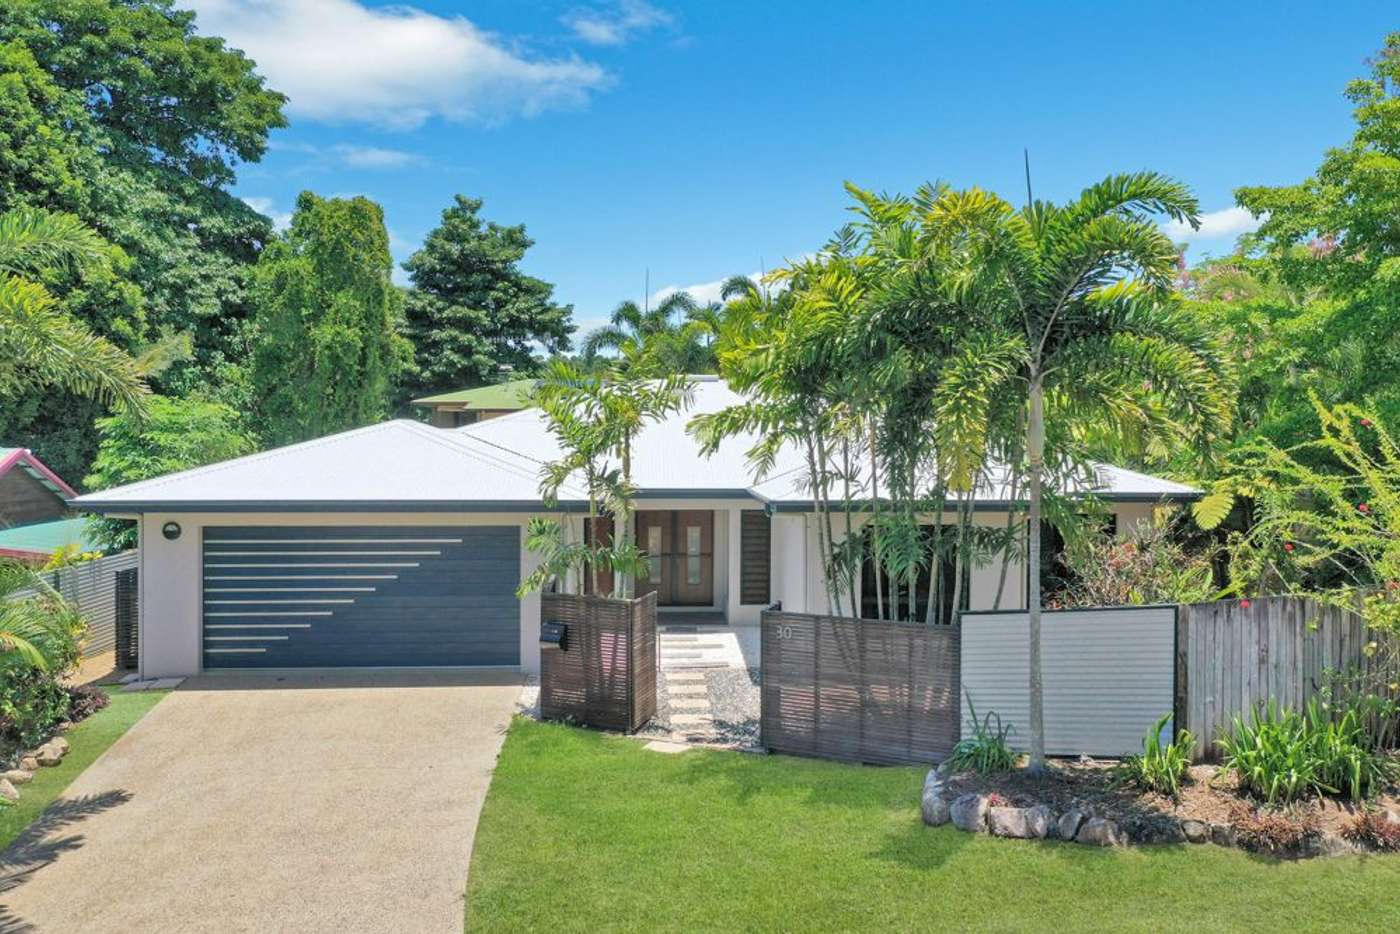 Main view of Homely house listing, 30 Pacific View Drive, Wongaling Beach QLD 4852